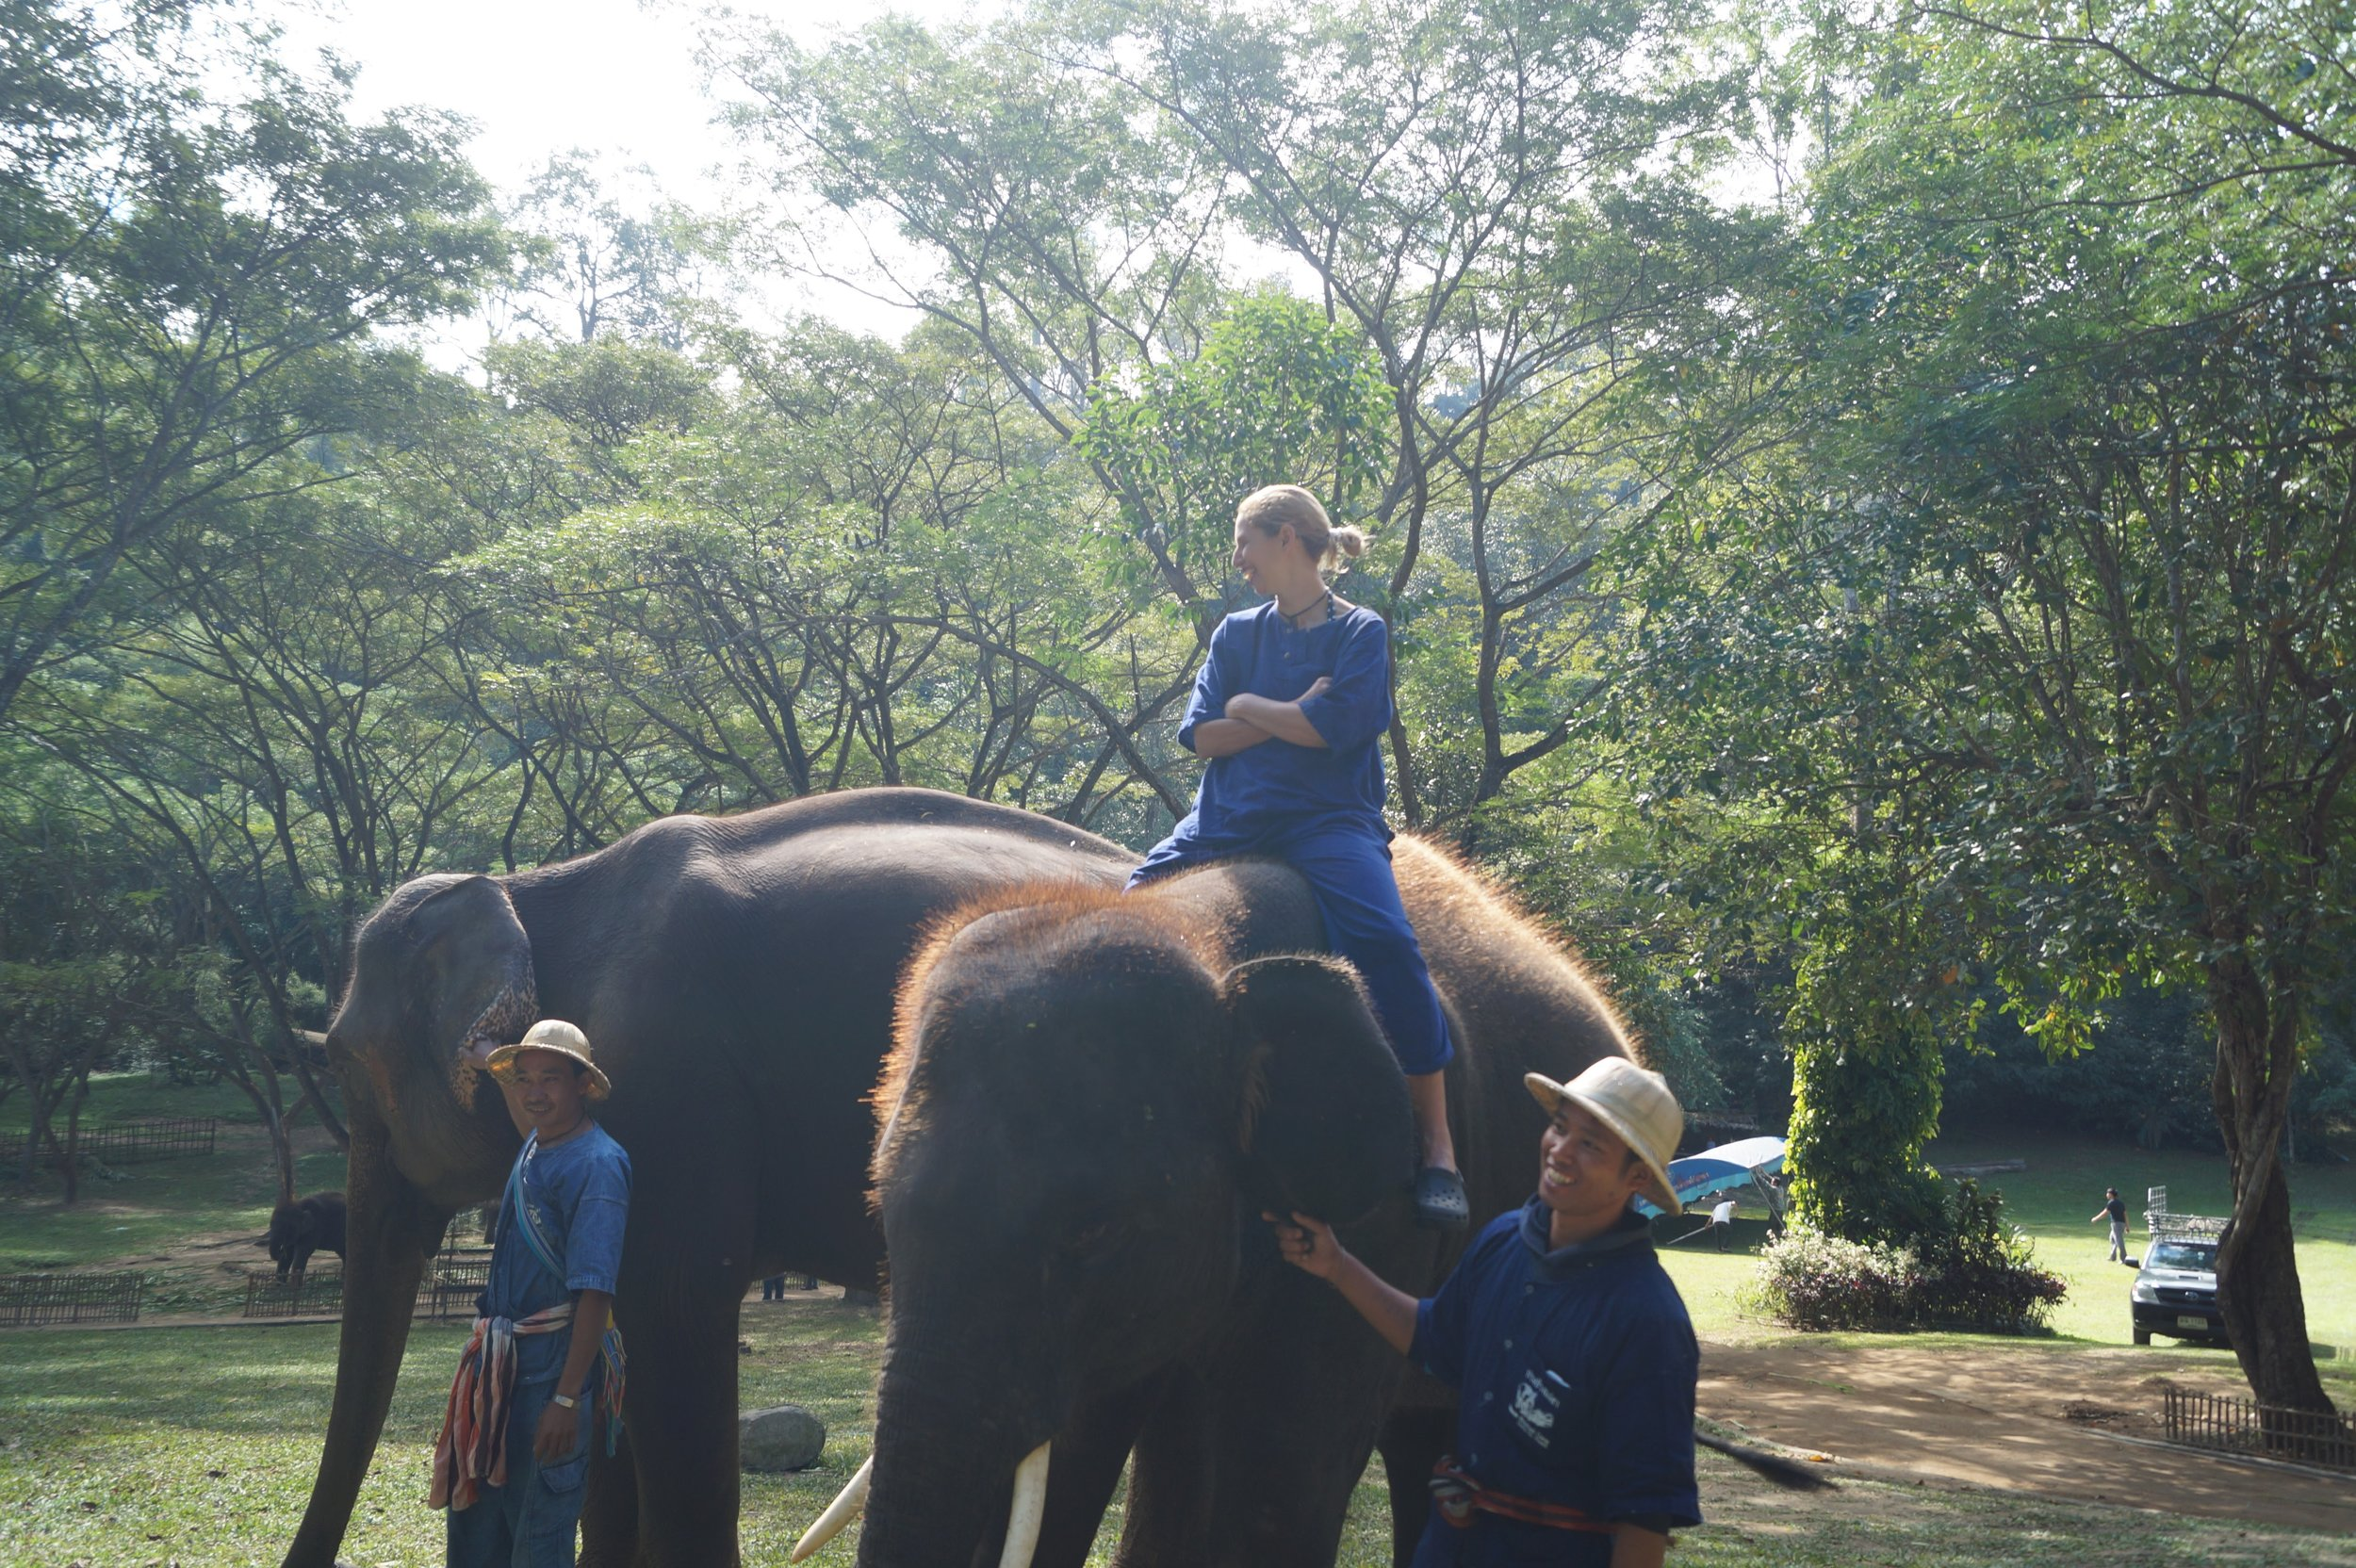 One of the greatest experiences in my life took place just outside the Northern city of Chiang Mai.